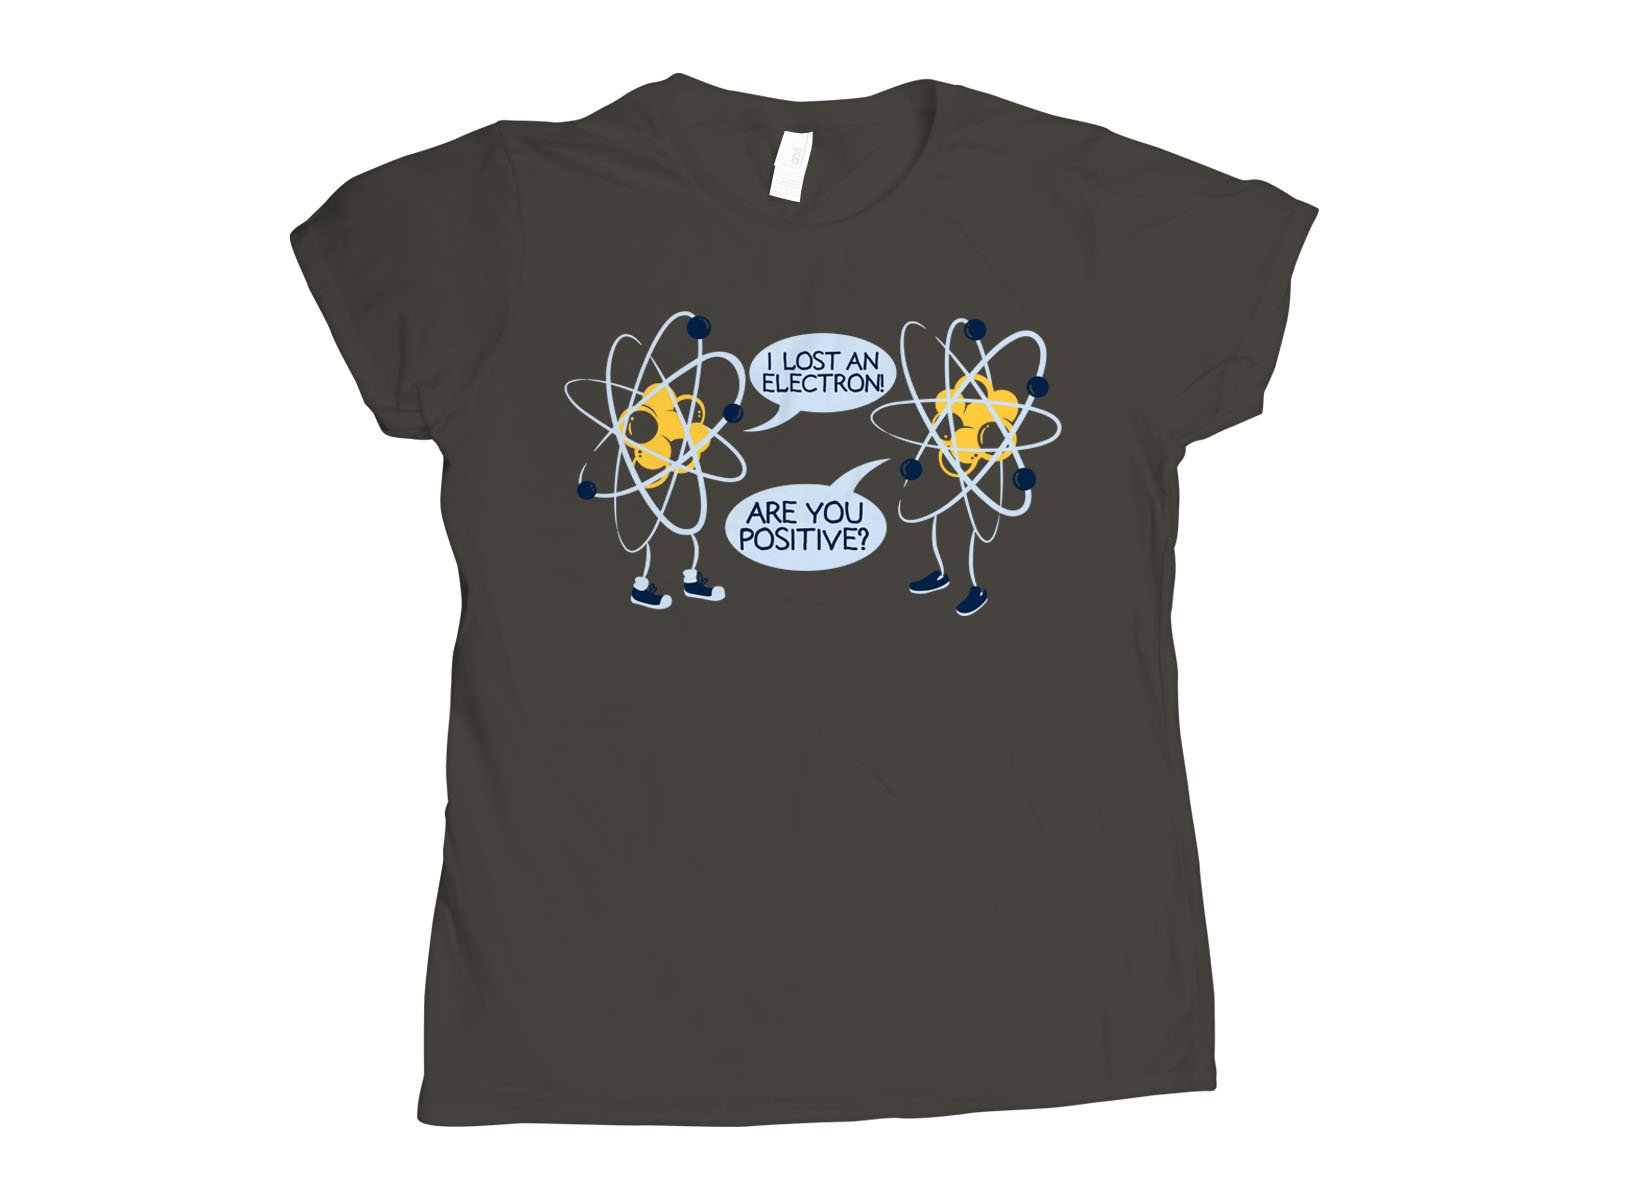 I Lost An Electron. Are You Positive? on Womens T-Shirt